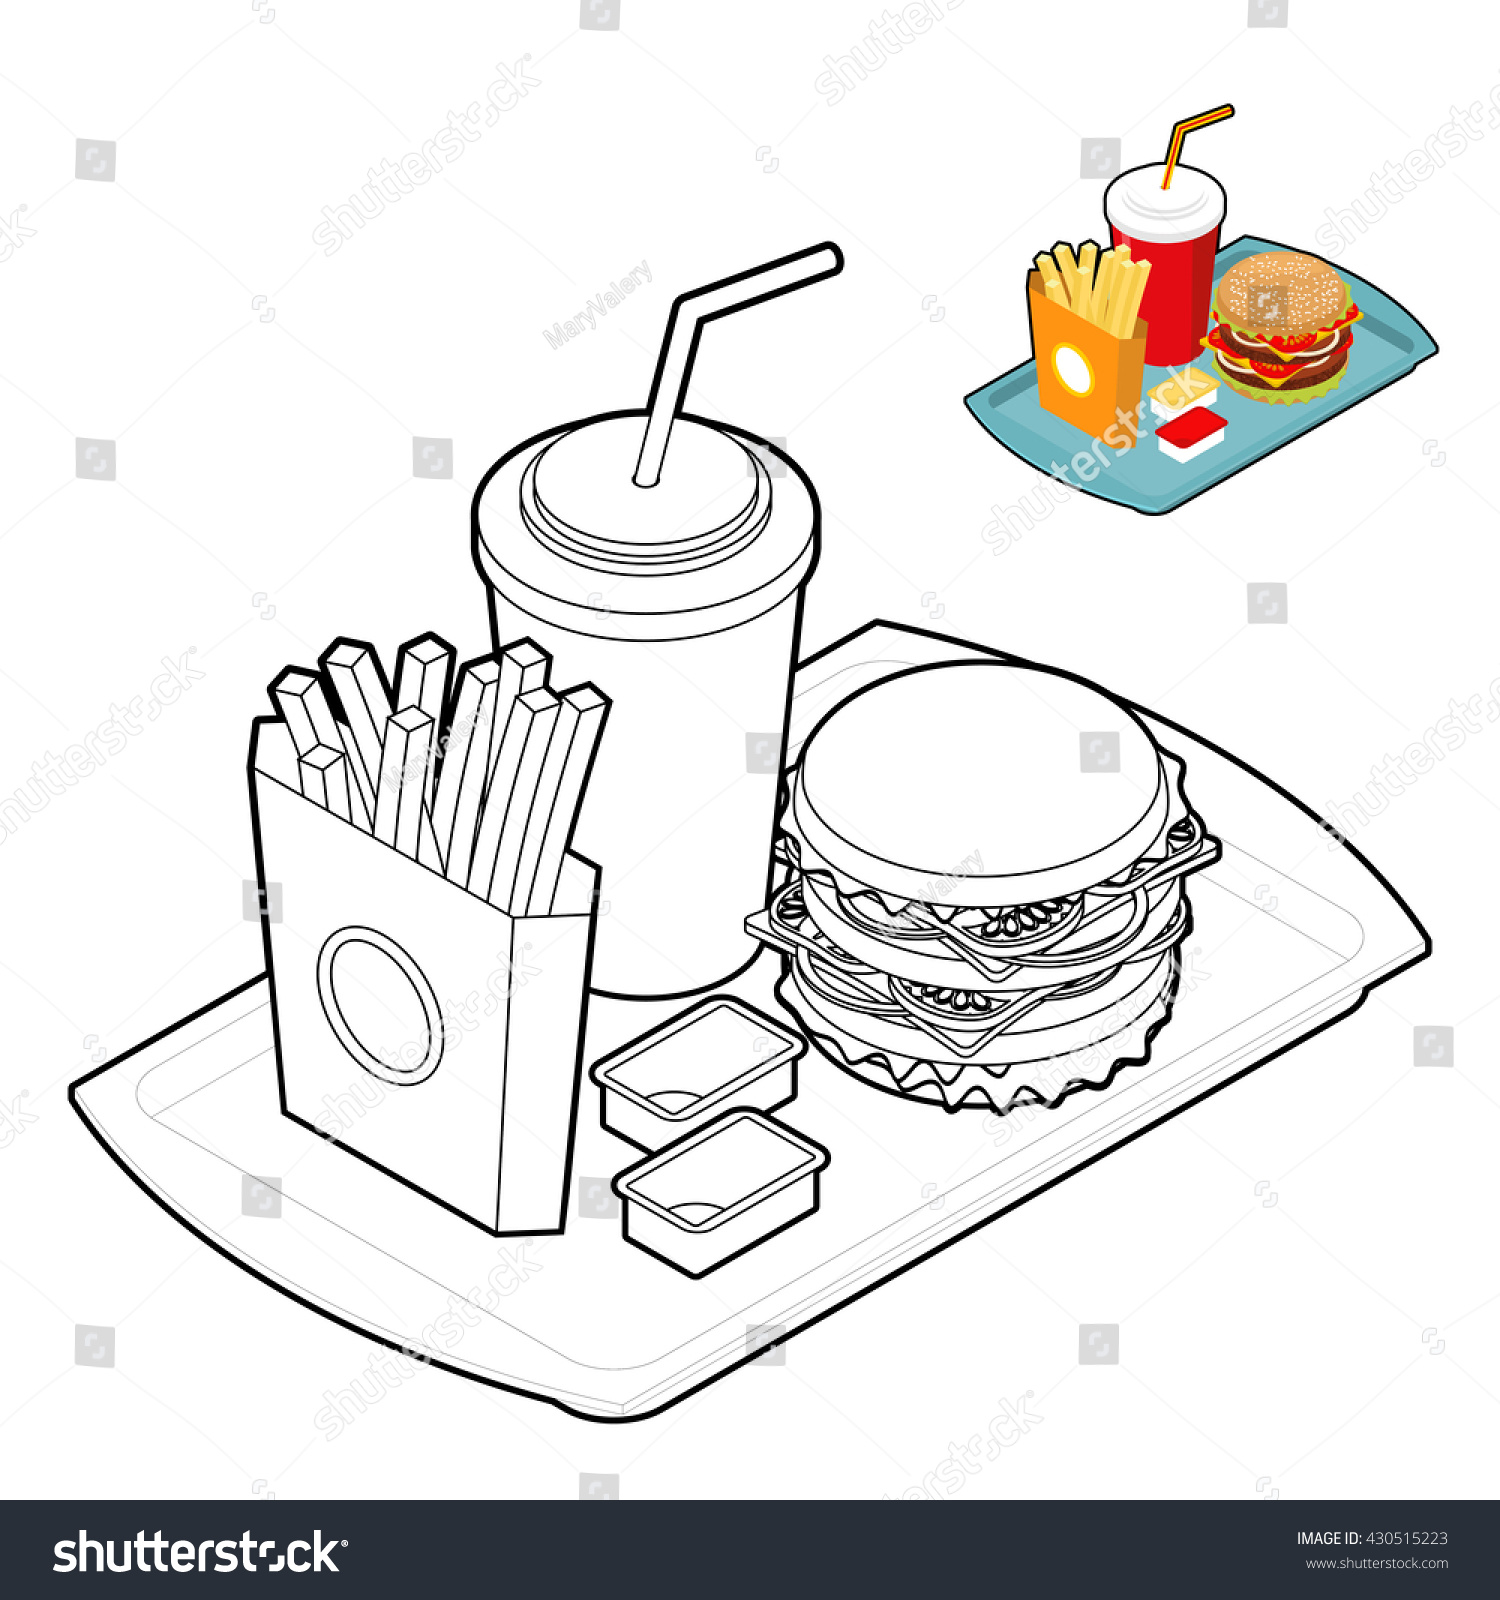 fast food coloring book food in linear style big fresh hamburger delicious frying - Food Coloring Book